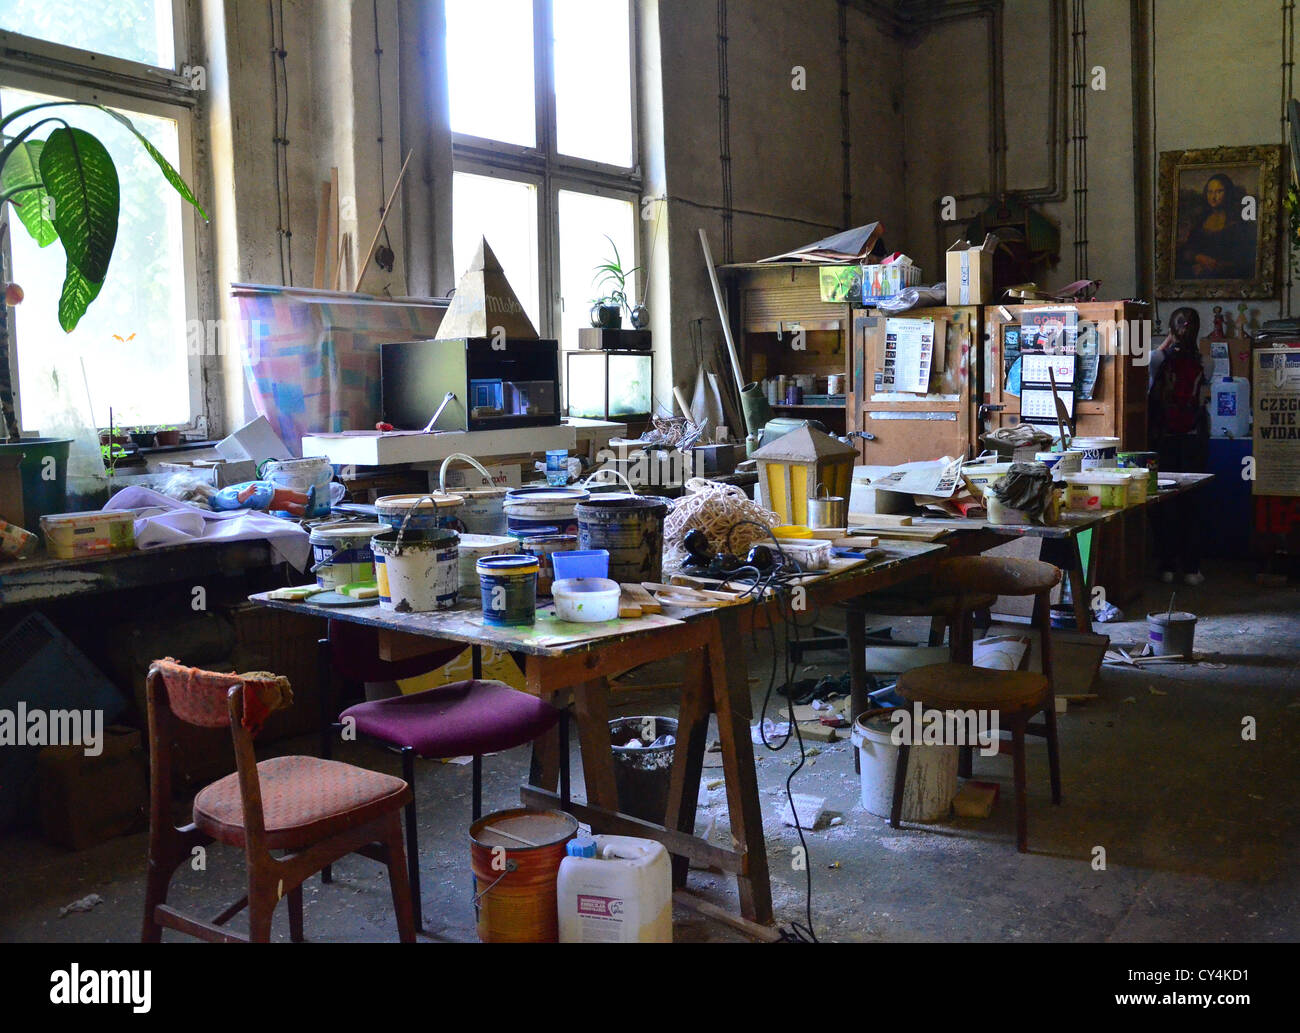 atelier art studio theater table mess muddle untidiness - Stock Image